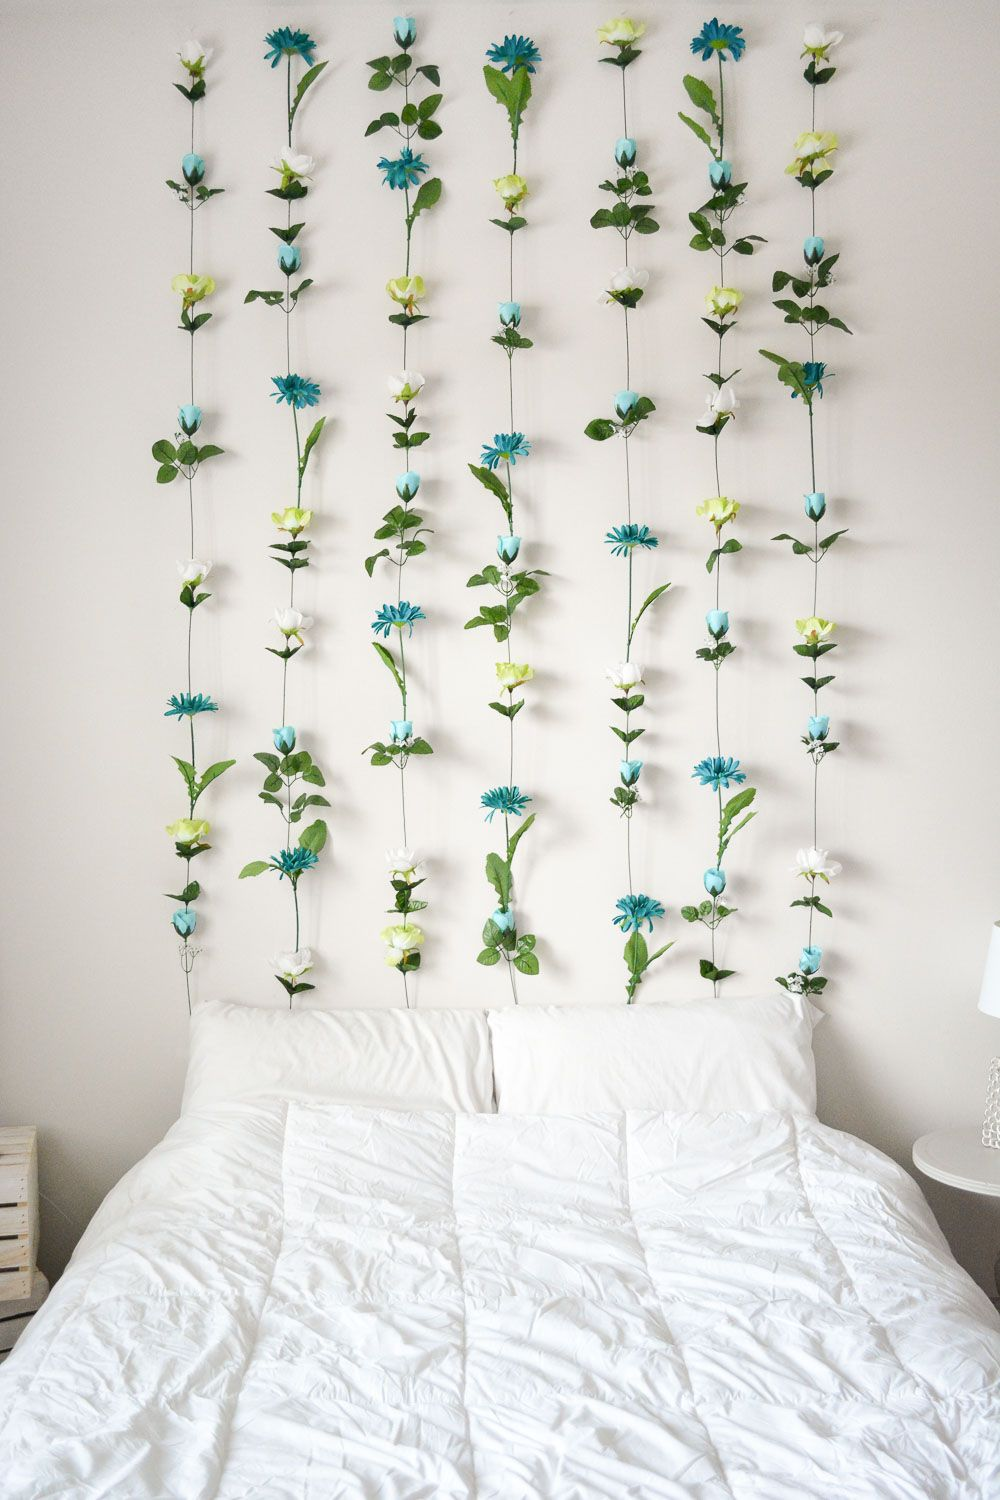 4 DIY Floral Decoration Ideas to Make Your Home Look More Beautiful